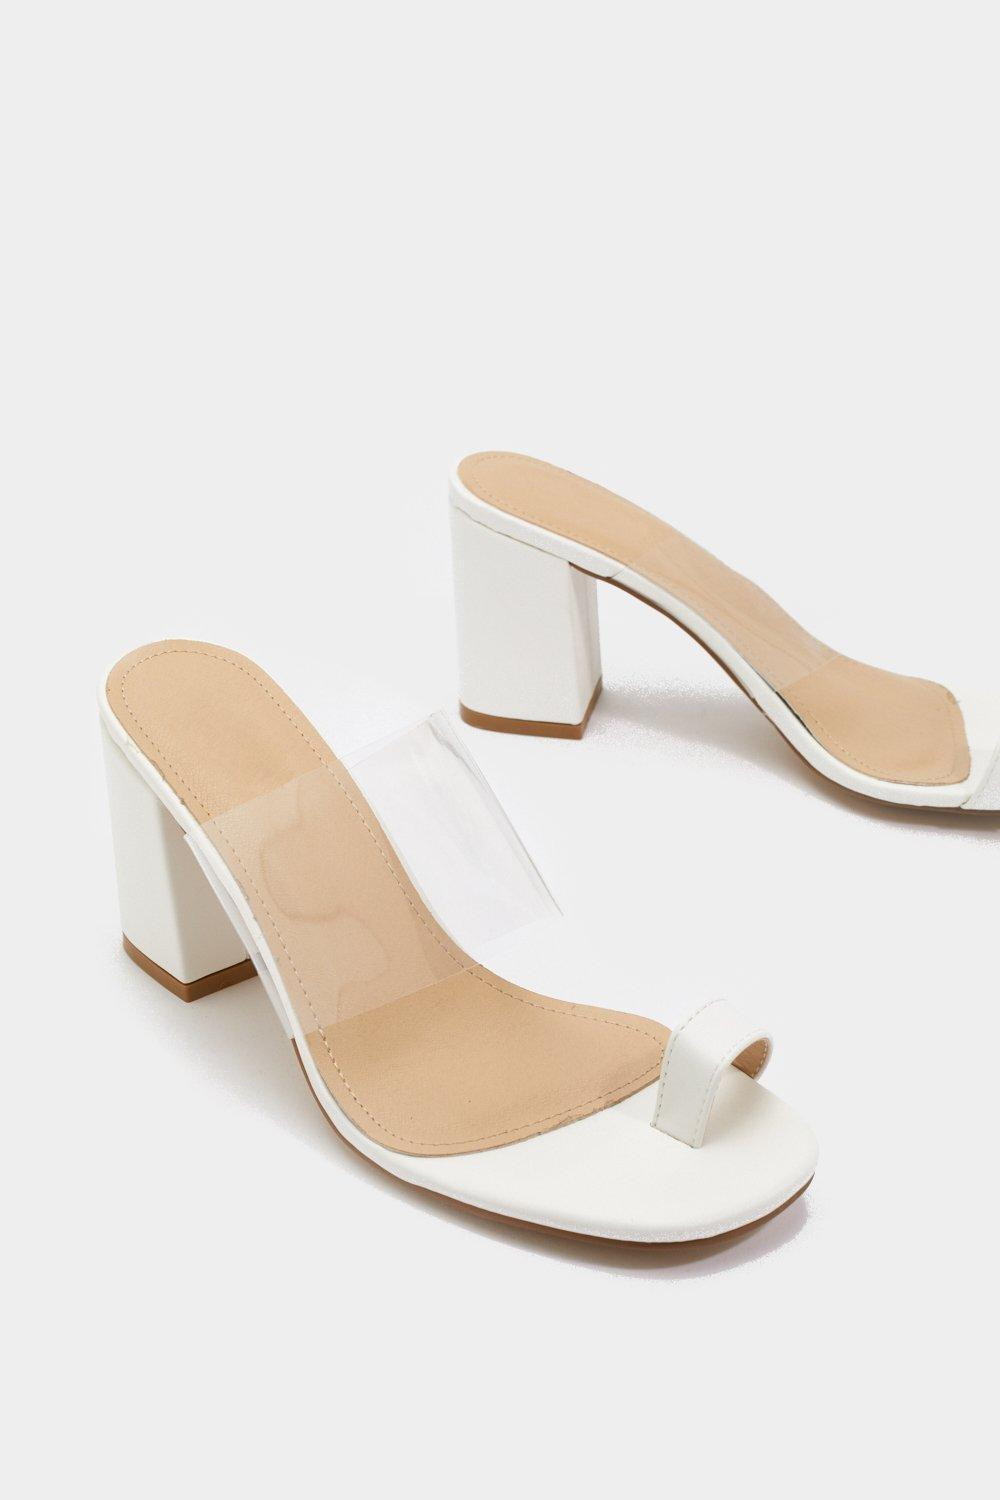 acca58648e8 ... White Perspex Toe Strap Block Heel Sandals - Lyst. View fullscreen